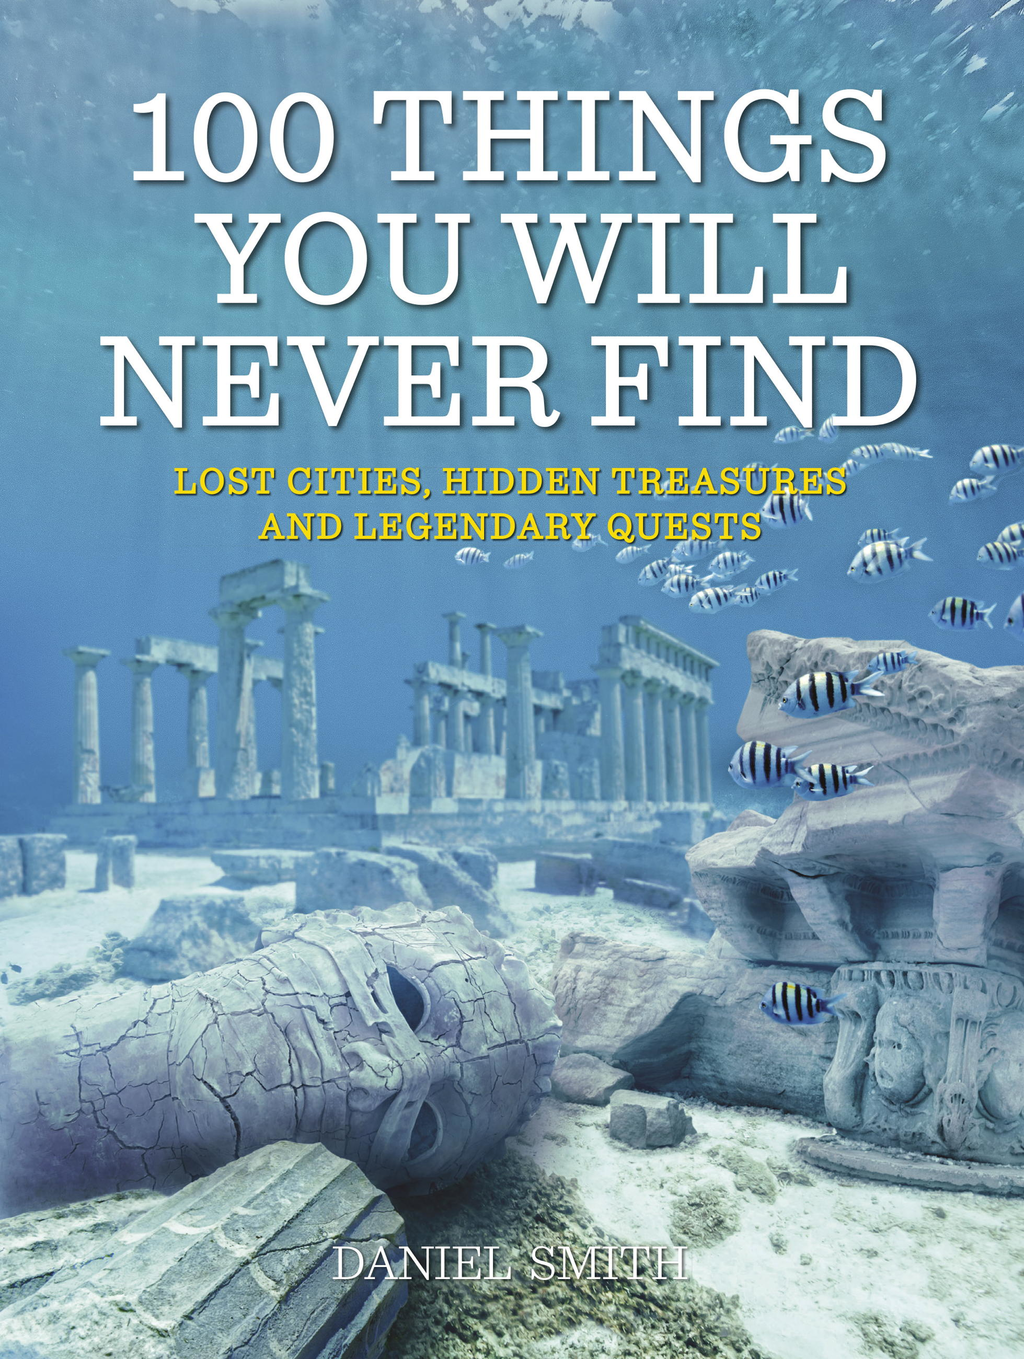 100 Things You Will Never Find Lost Cities,  Hidden Treasures and Legendary Quests